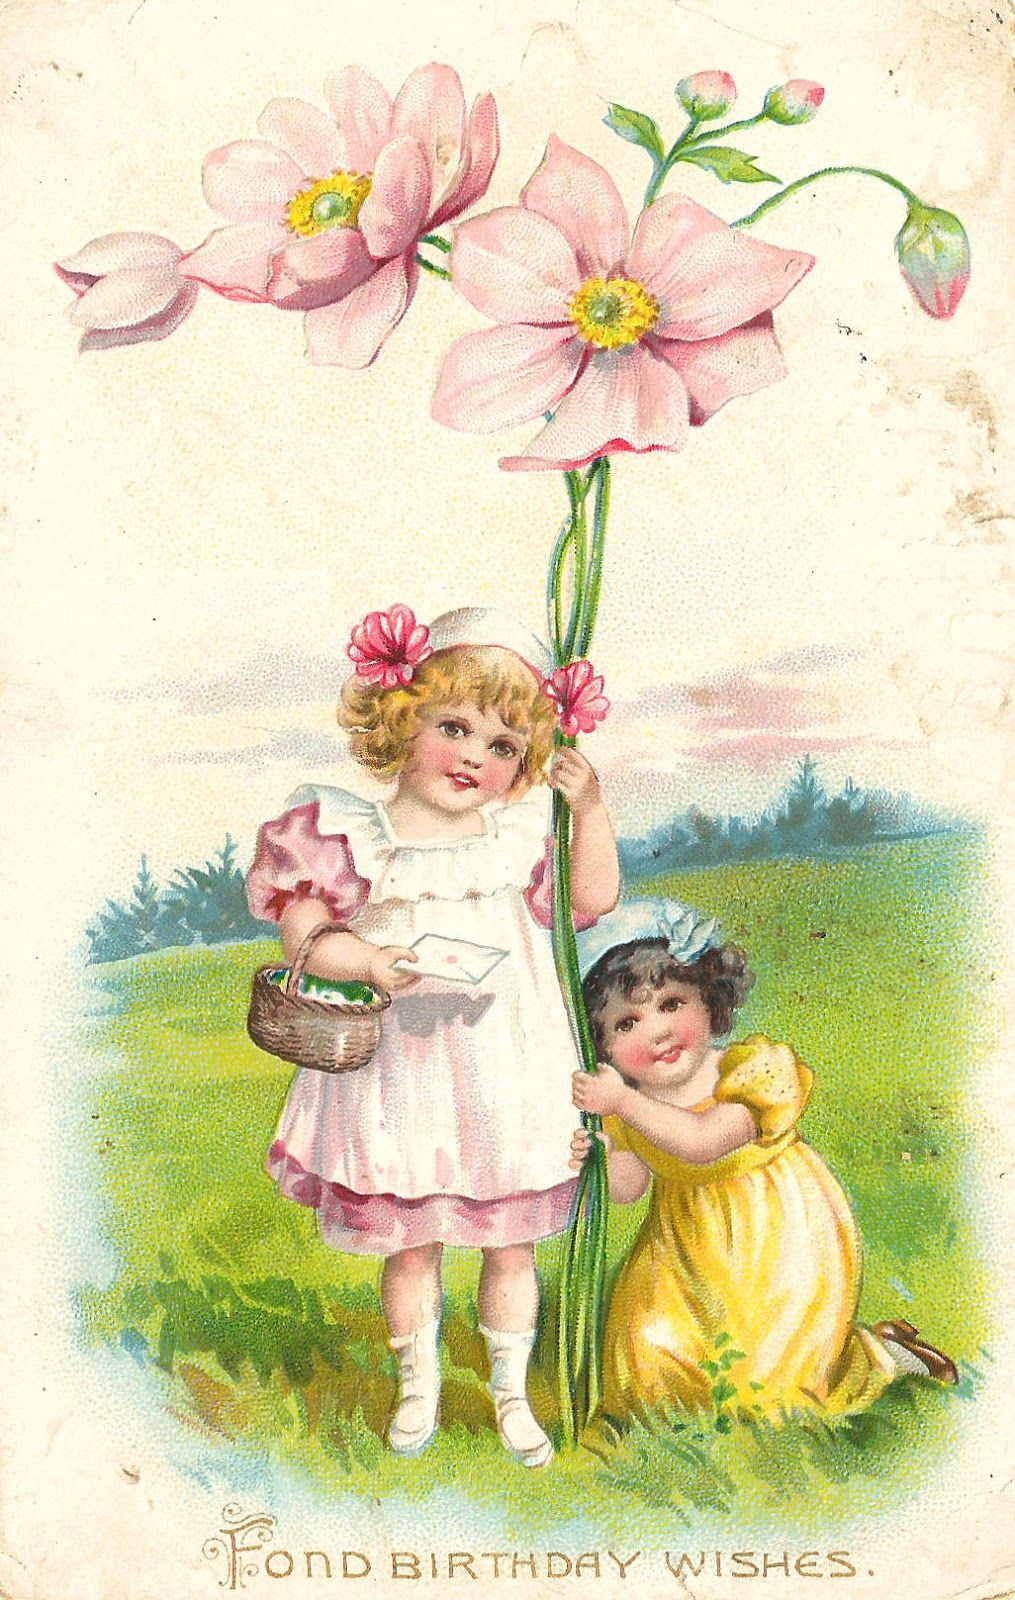 Antique images free vintage graphic pink flower clip art with 2 antique images free vintage graphic pink flower clip art with 2 girls on birthday postcard mightylinksfo